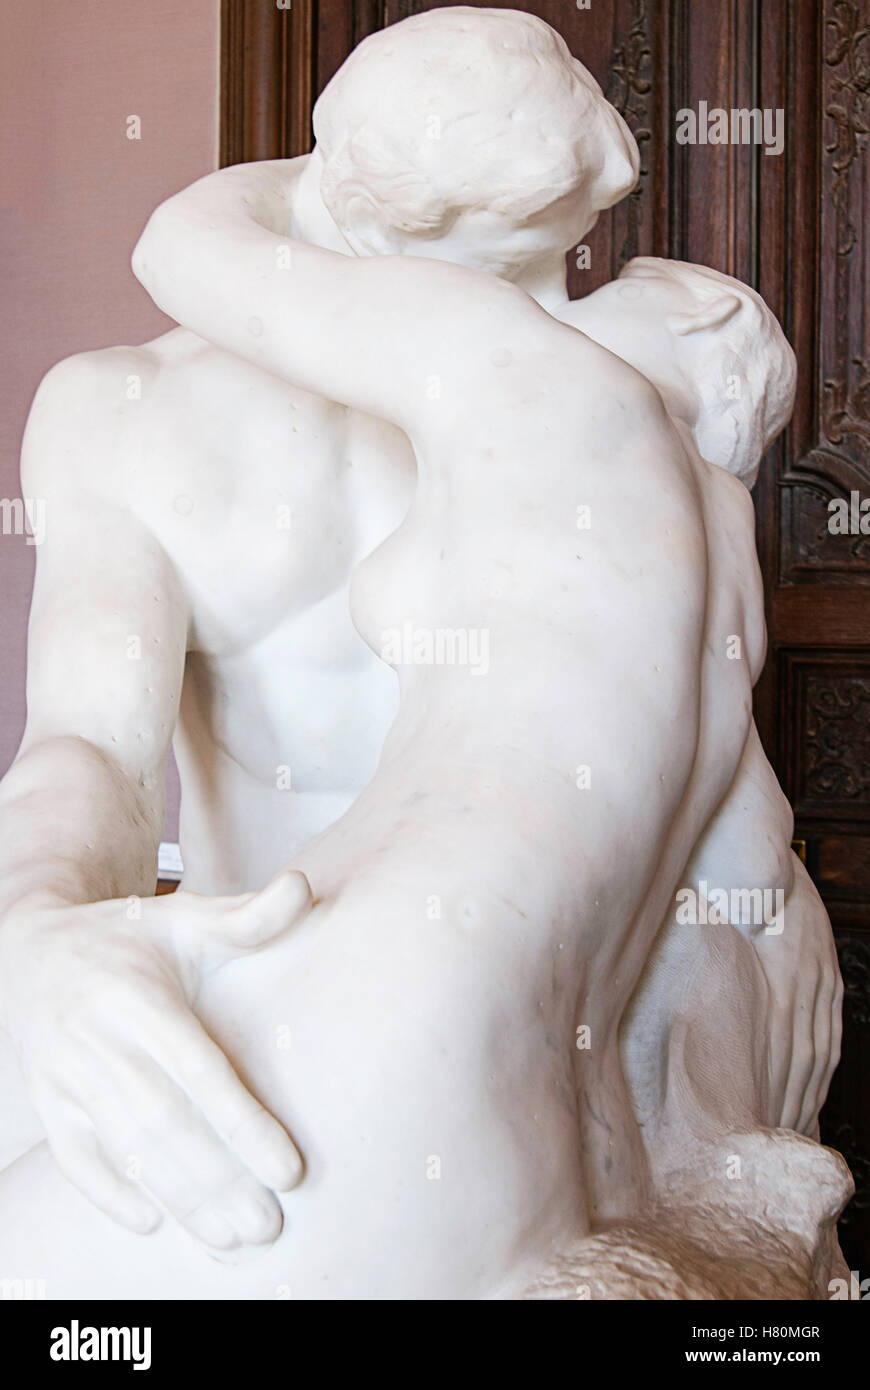 The Kiss by Auguste Rodin at the Rodin Museum in Paris, France. Stock Photo